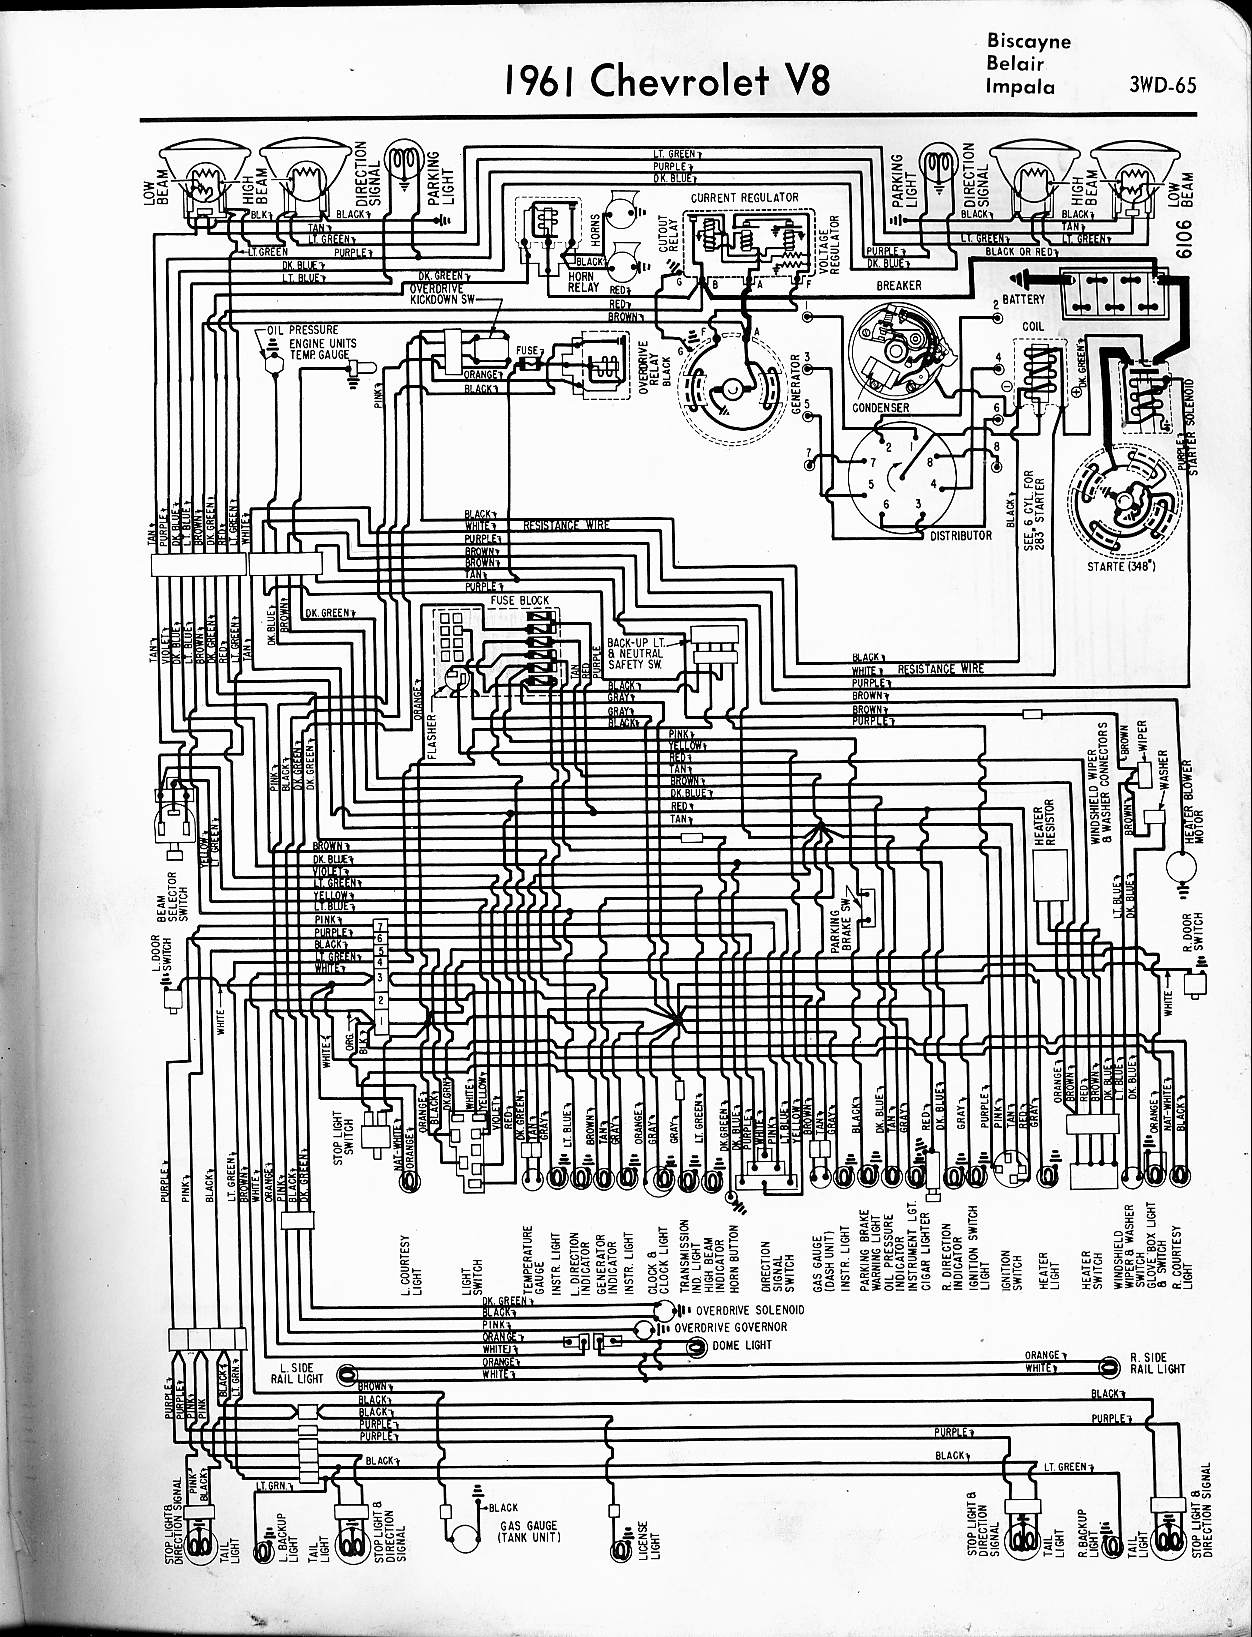 images of 1961 lincoln continental wiring diagram wiring library59 chevy wiring diagram wiring diagram schematics diagram for inverter pontiac wiring diagram for 1961